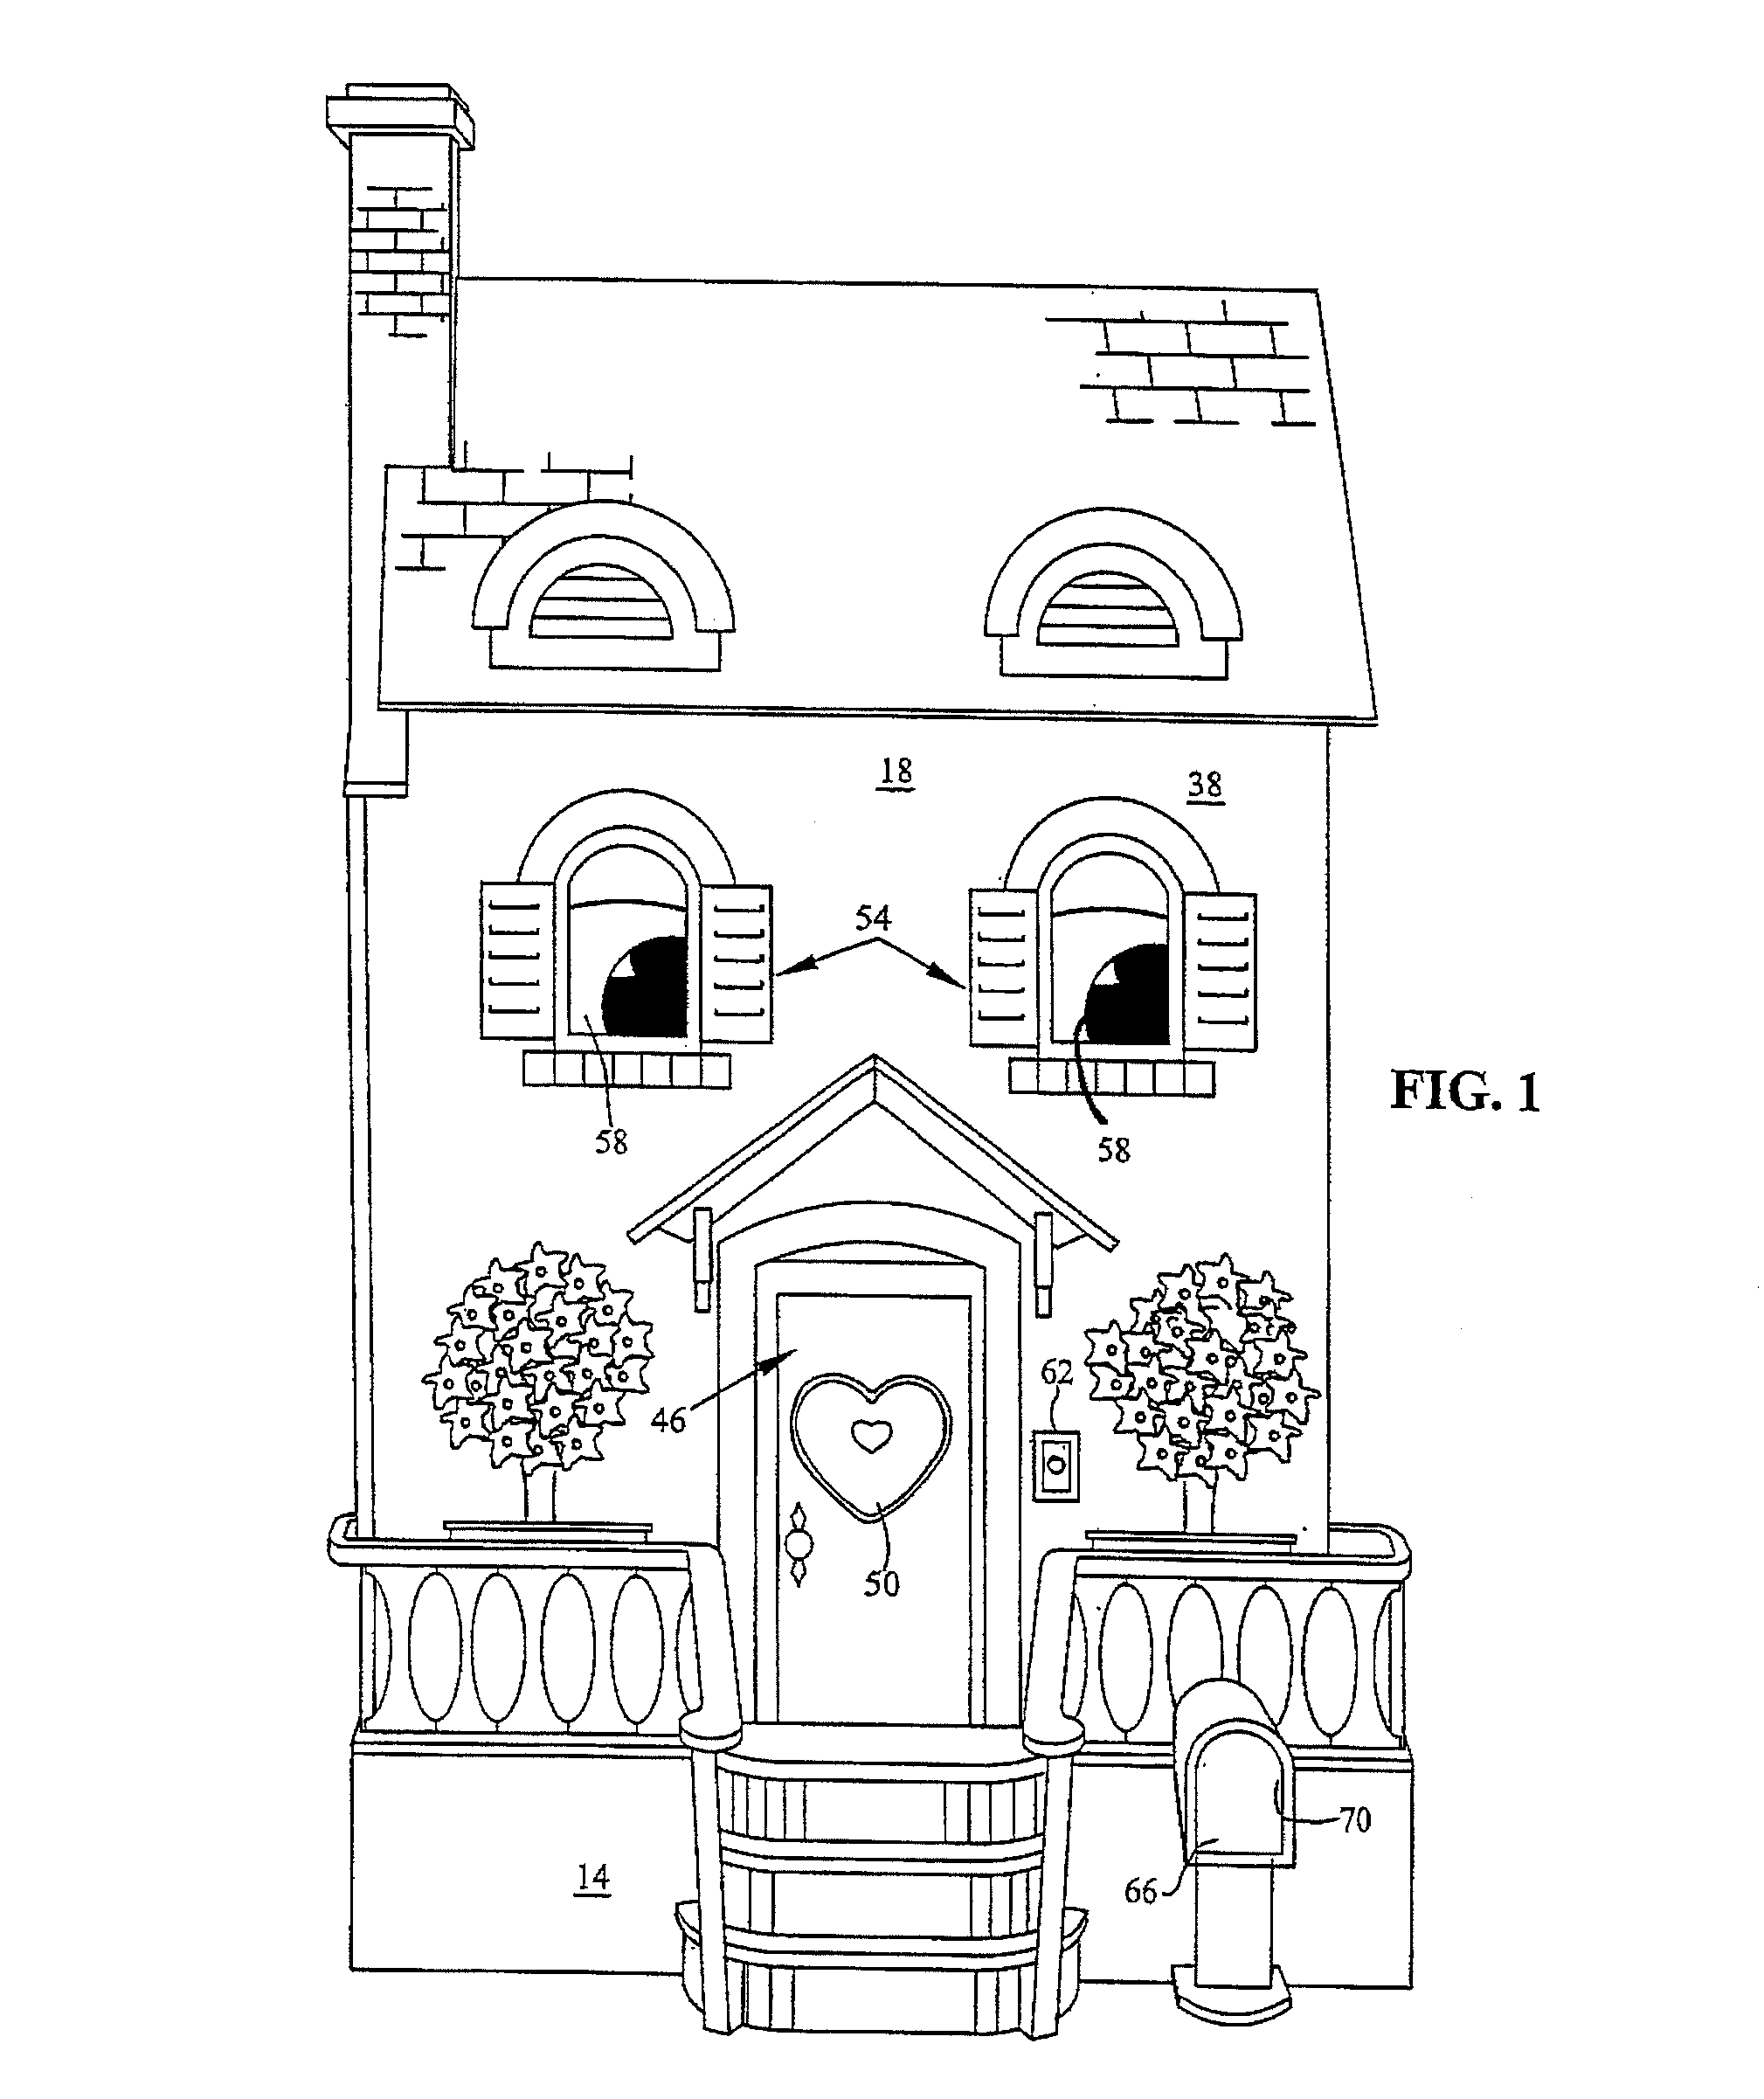 patent us8608529 - dollhouse and method of folding the dollhouse